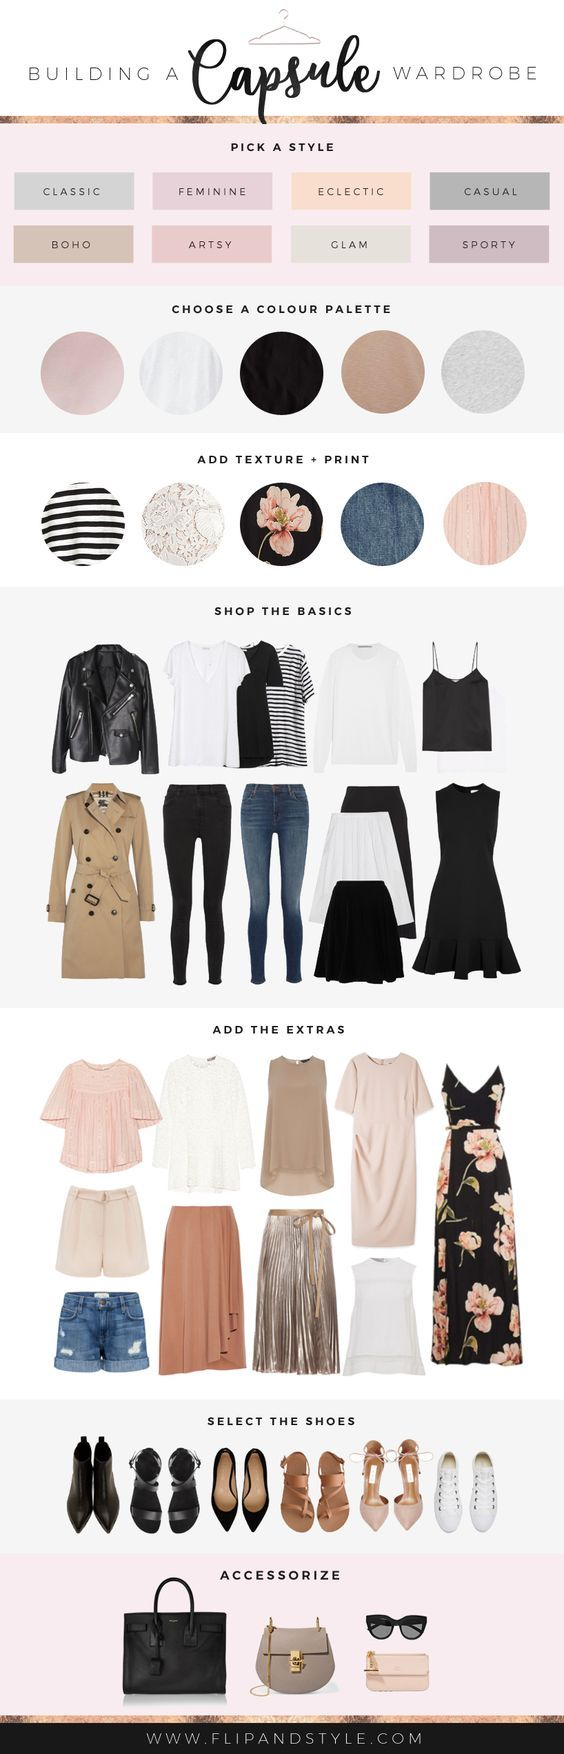 How to build a capsule wardrobe   Style essentials, outfits and staples that will last!   www.flipandstyle.com